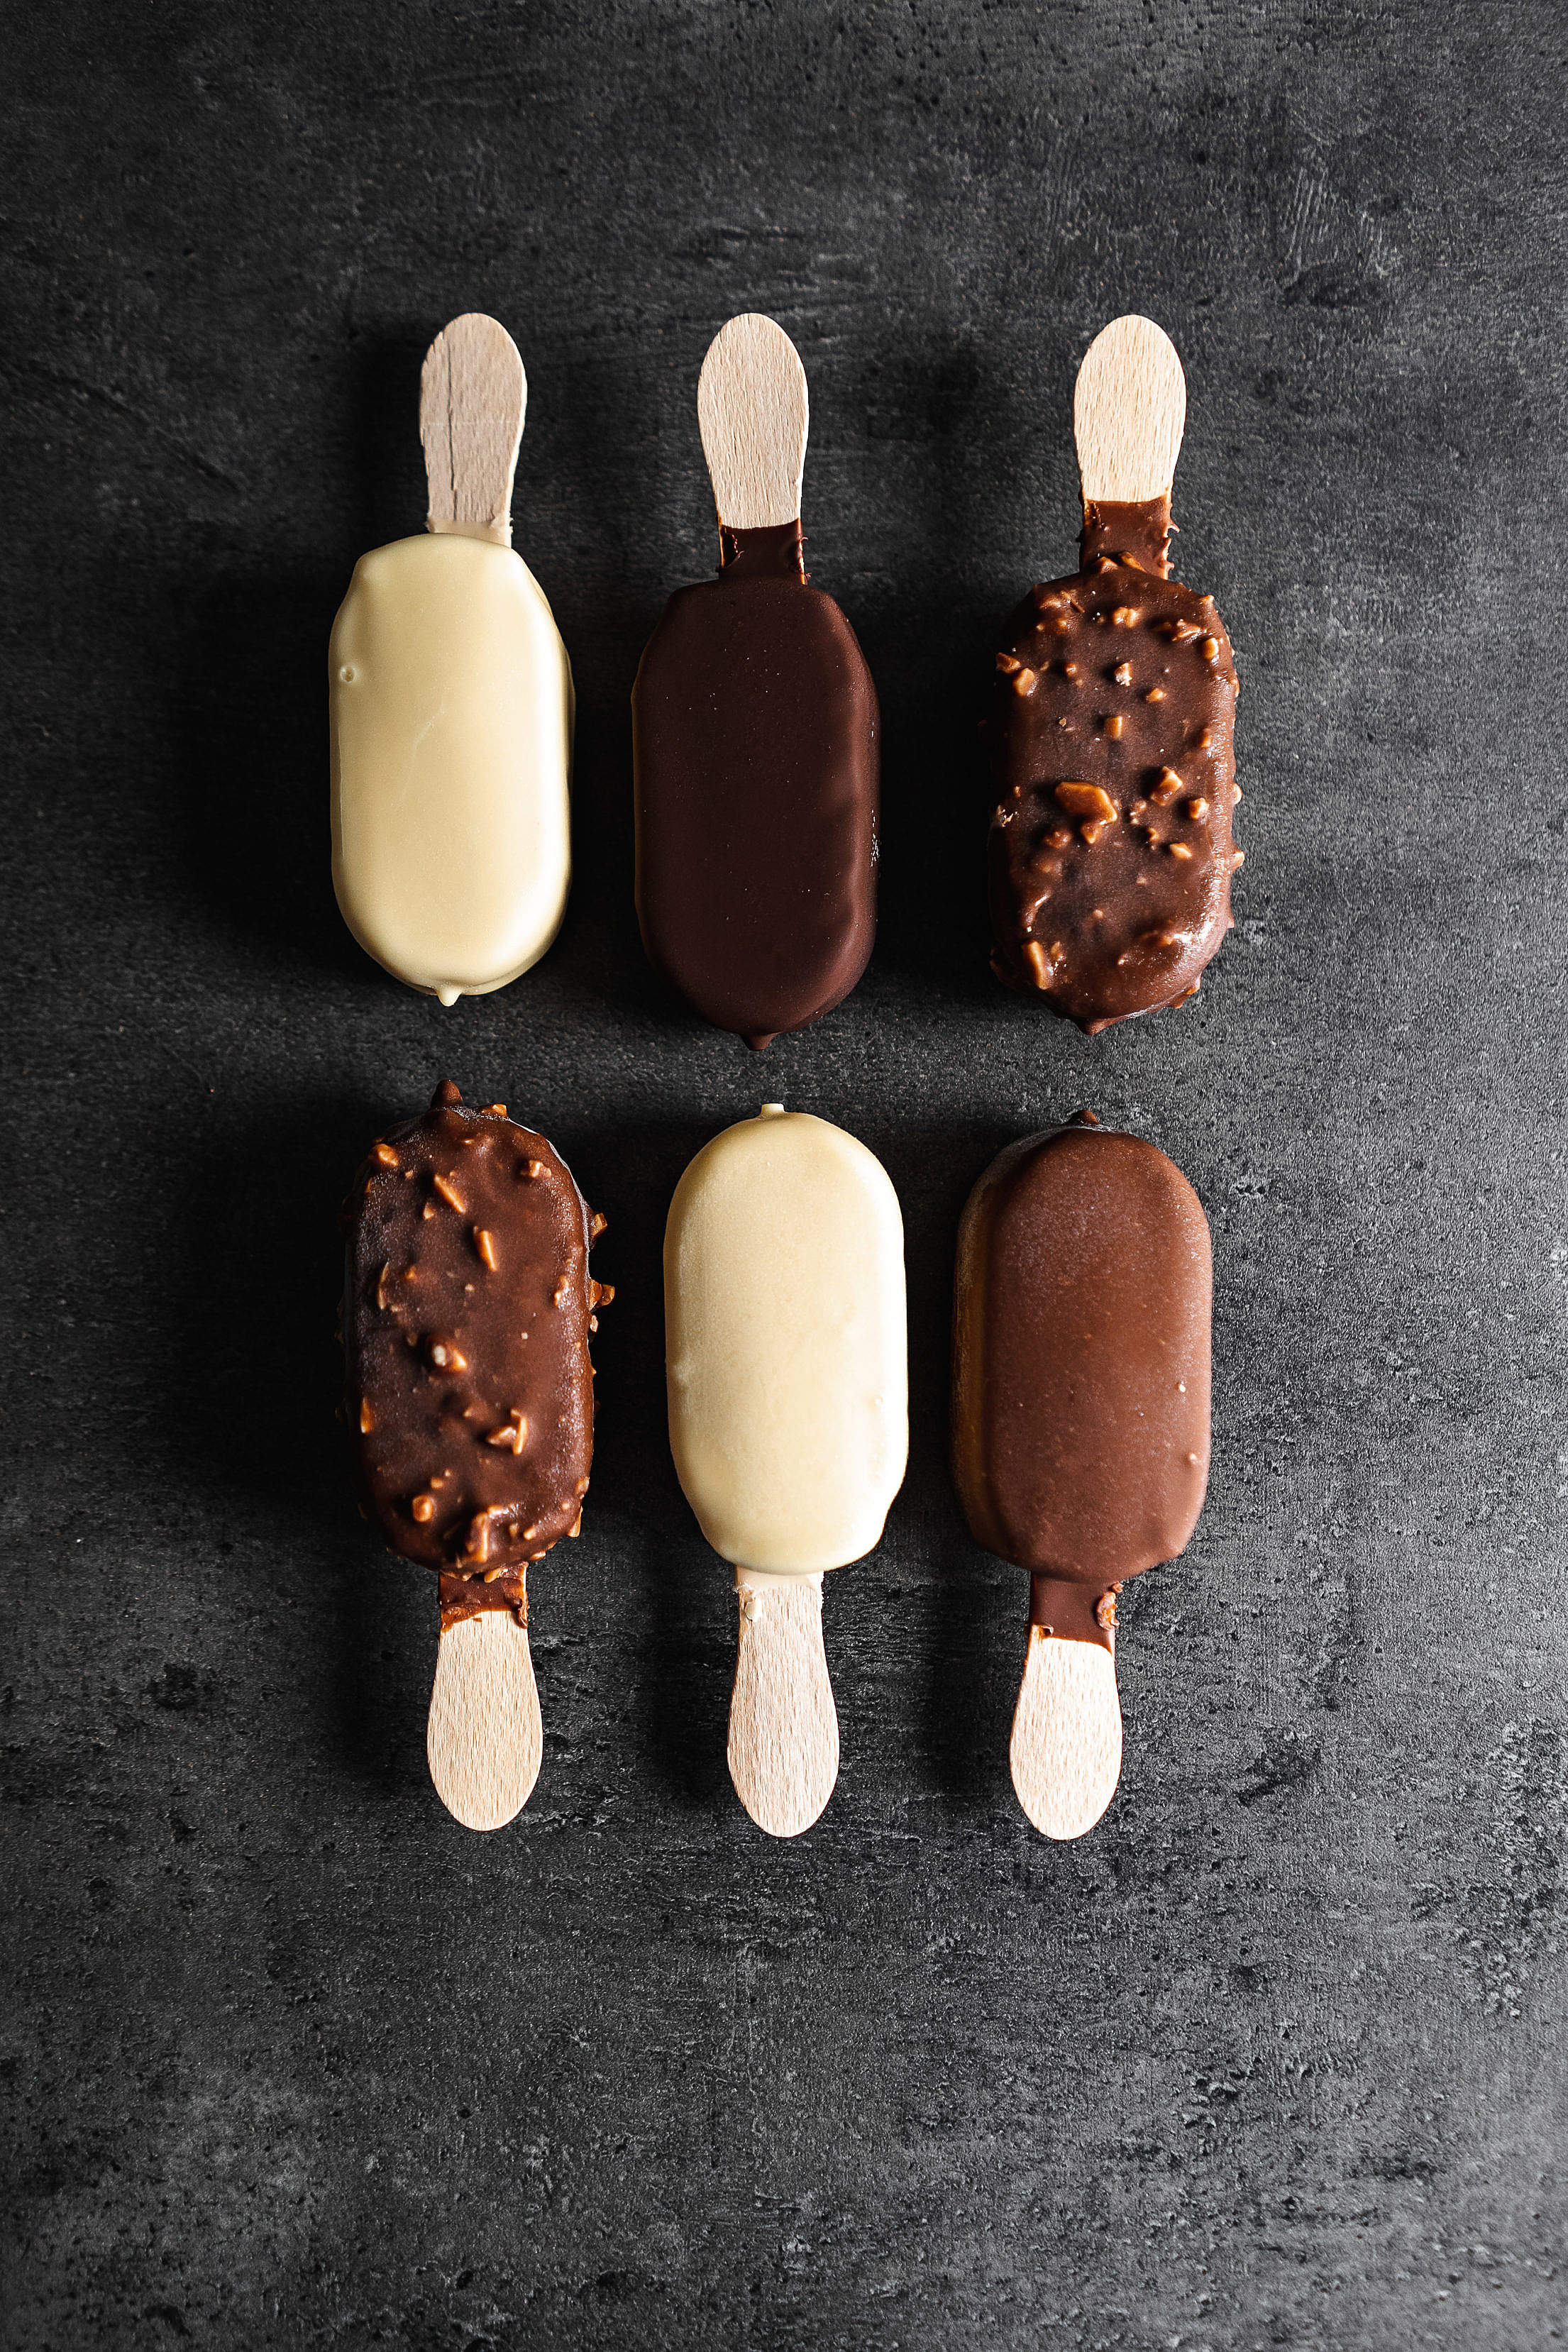 Different Kinds of Chocolate Ice Lollies Free Stock Photo